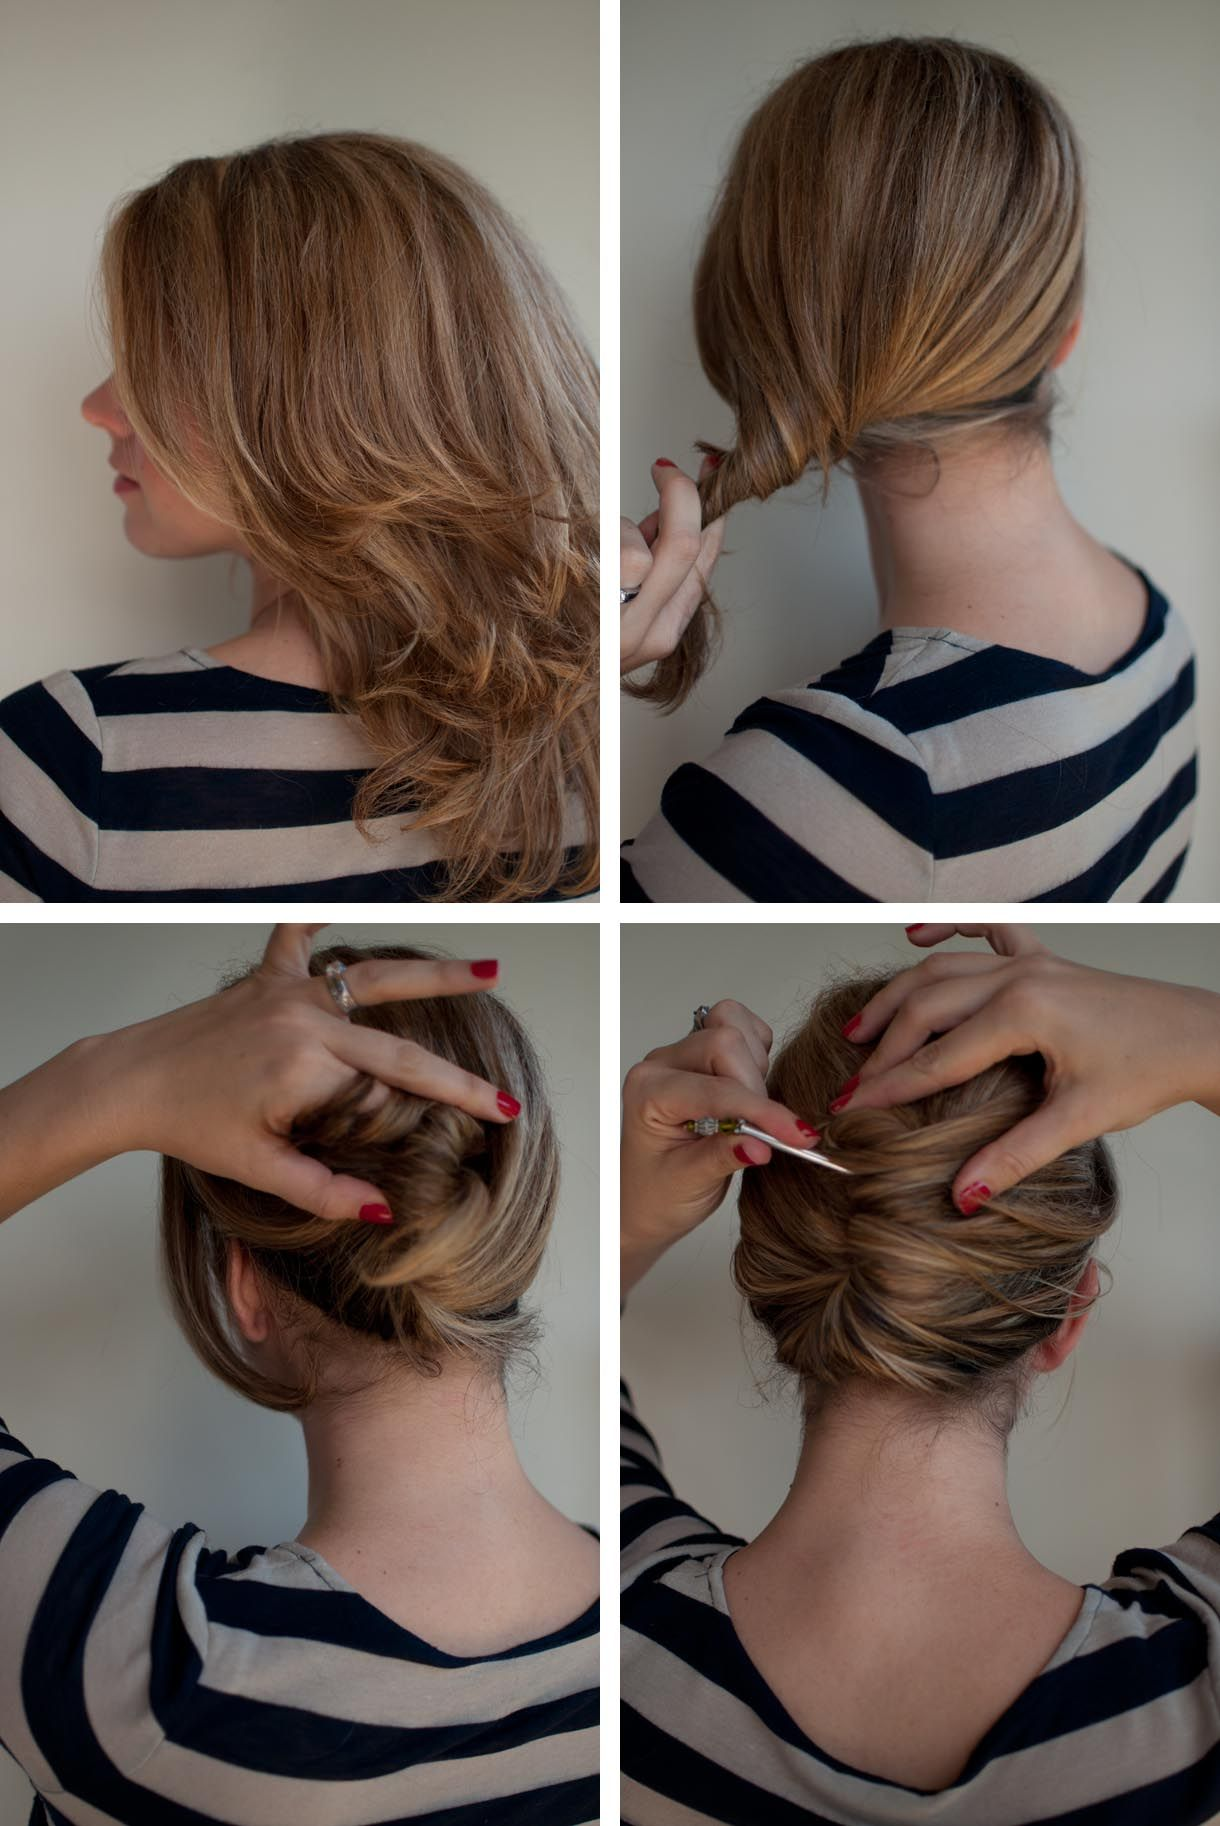 Hairstyles for Hairsticks - Hair Romance  Hair styles, Hair